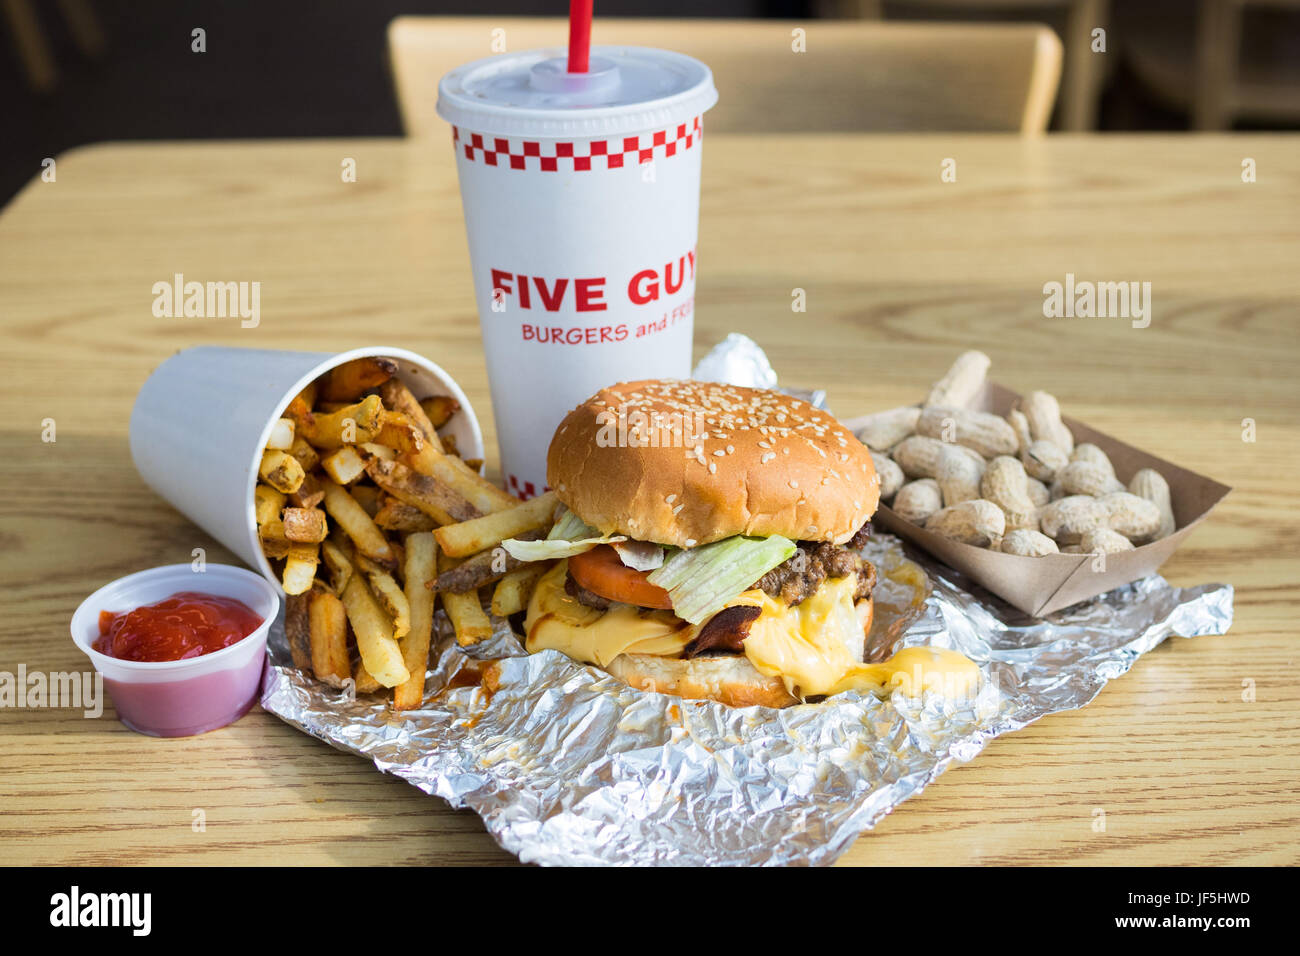 A bacon cheeseburger, French fries, and peanuts from Five Guys Burgers and Fries, an American fast casual restaurant - Stock Image